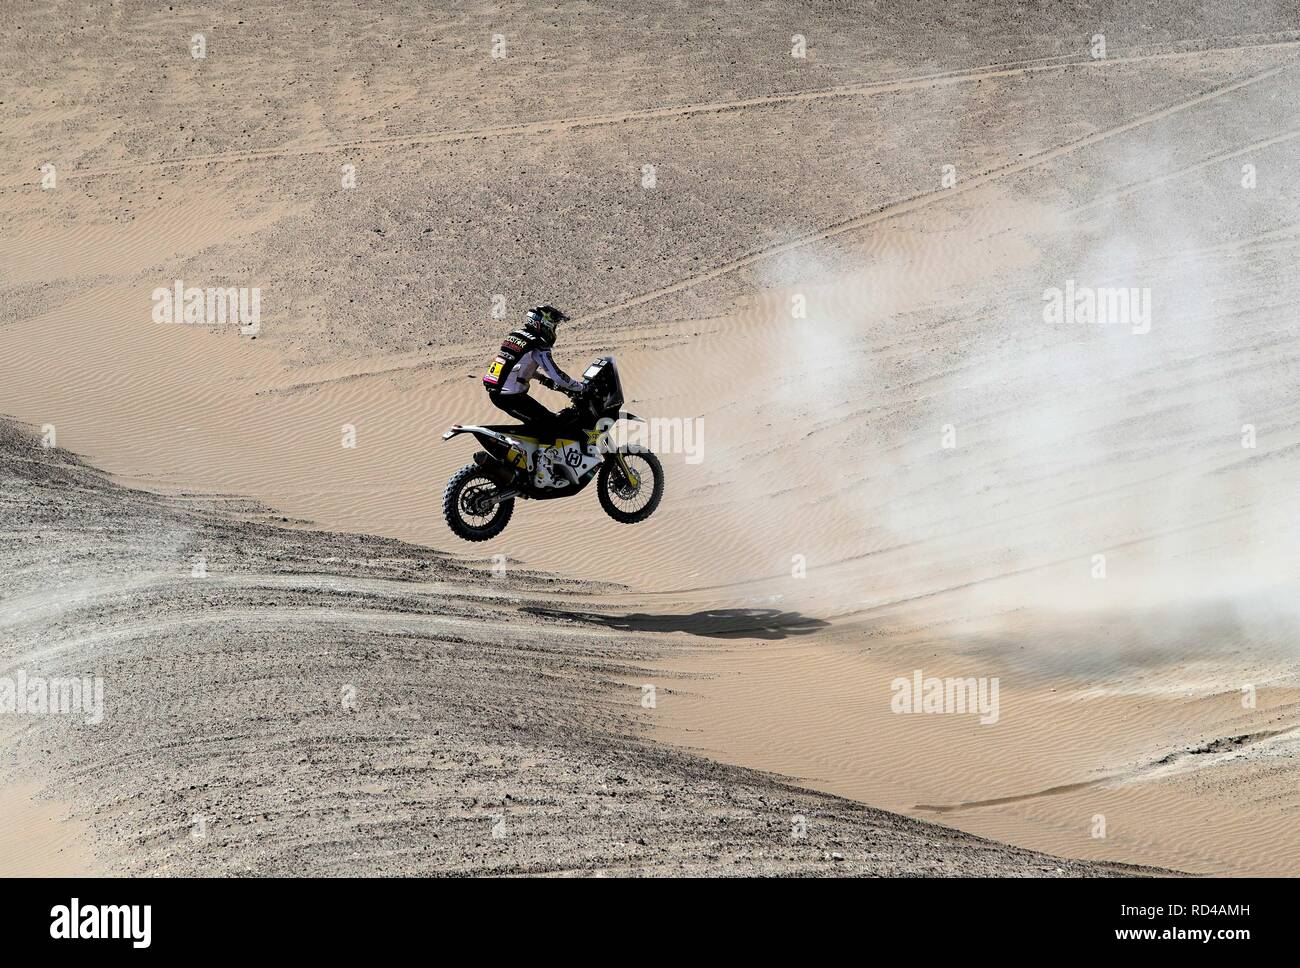 Pisco, Peru. 16th Jan, 2019. Chilean Pablo Quintanilla of Husqvarna during the ninth stage of the Rally Dakar 2018, in Pisco, Peru, 16 January 2019. Credit: Ernesto Arias/EFE/Alamy Live News - Stock Image